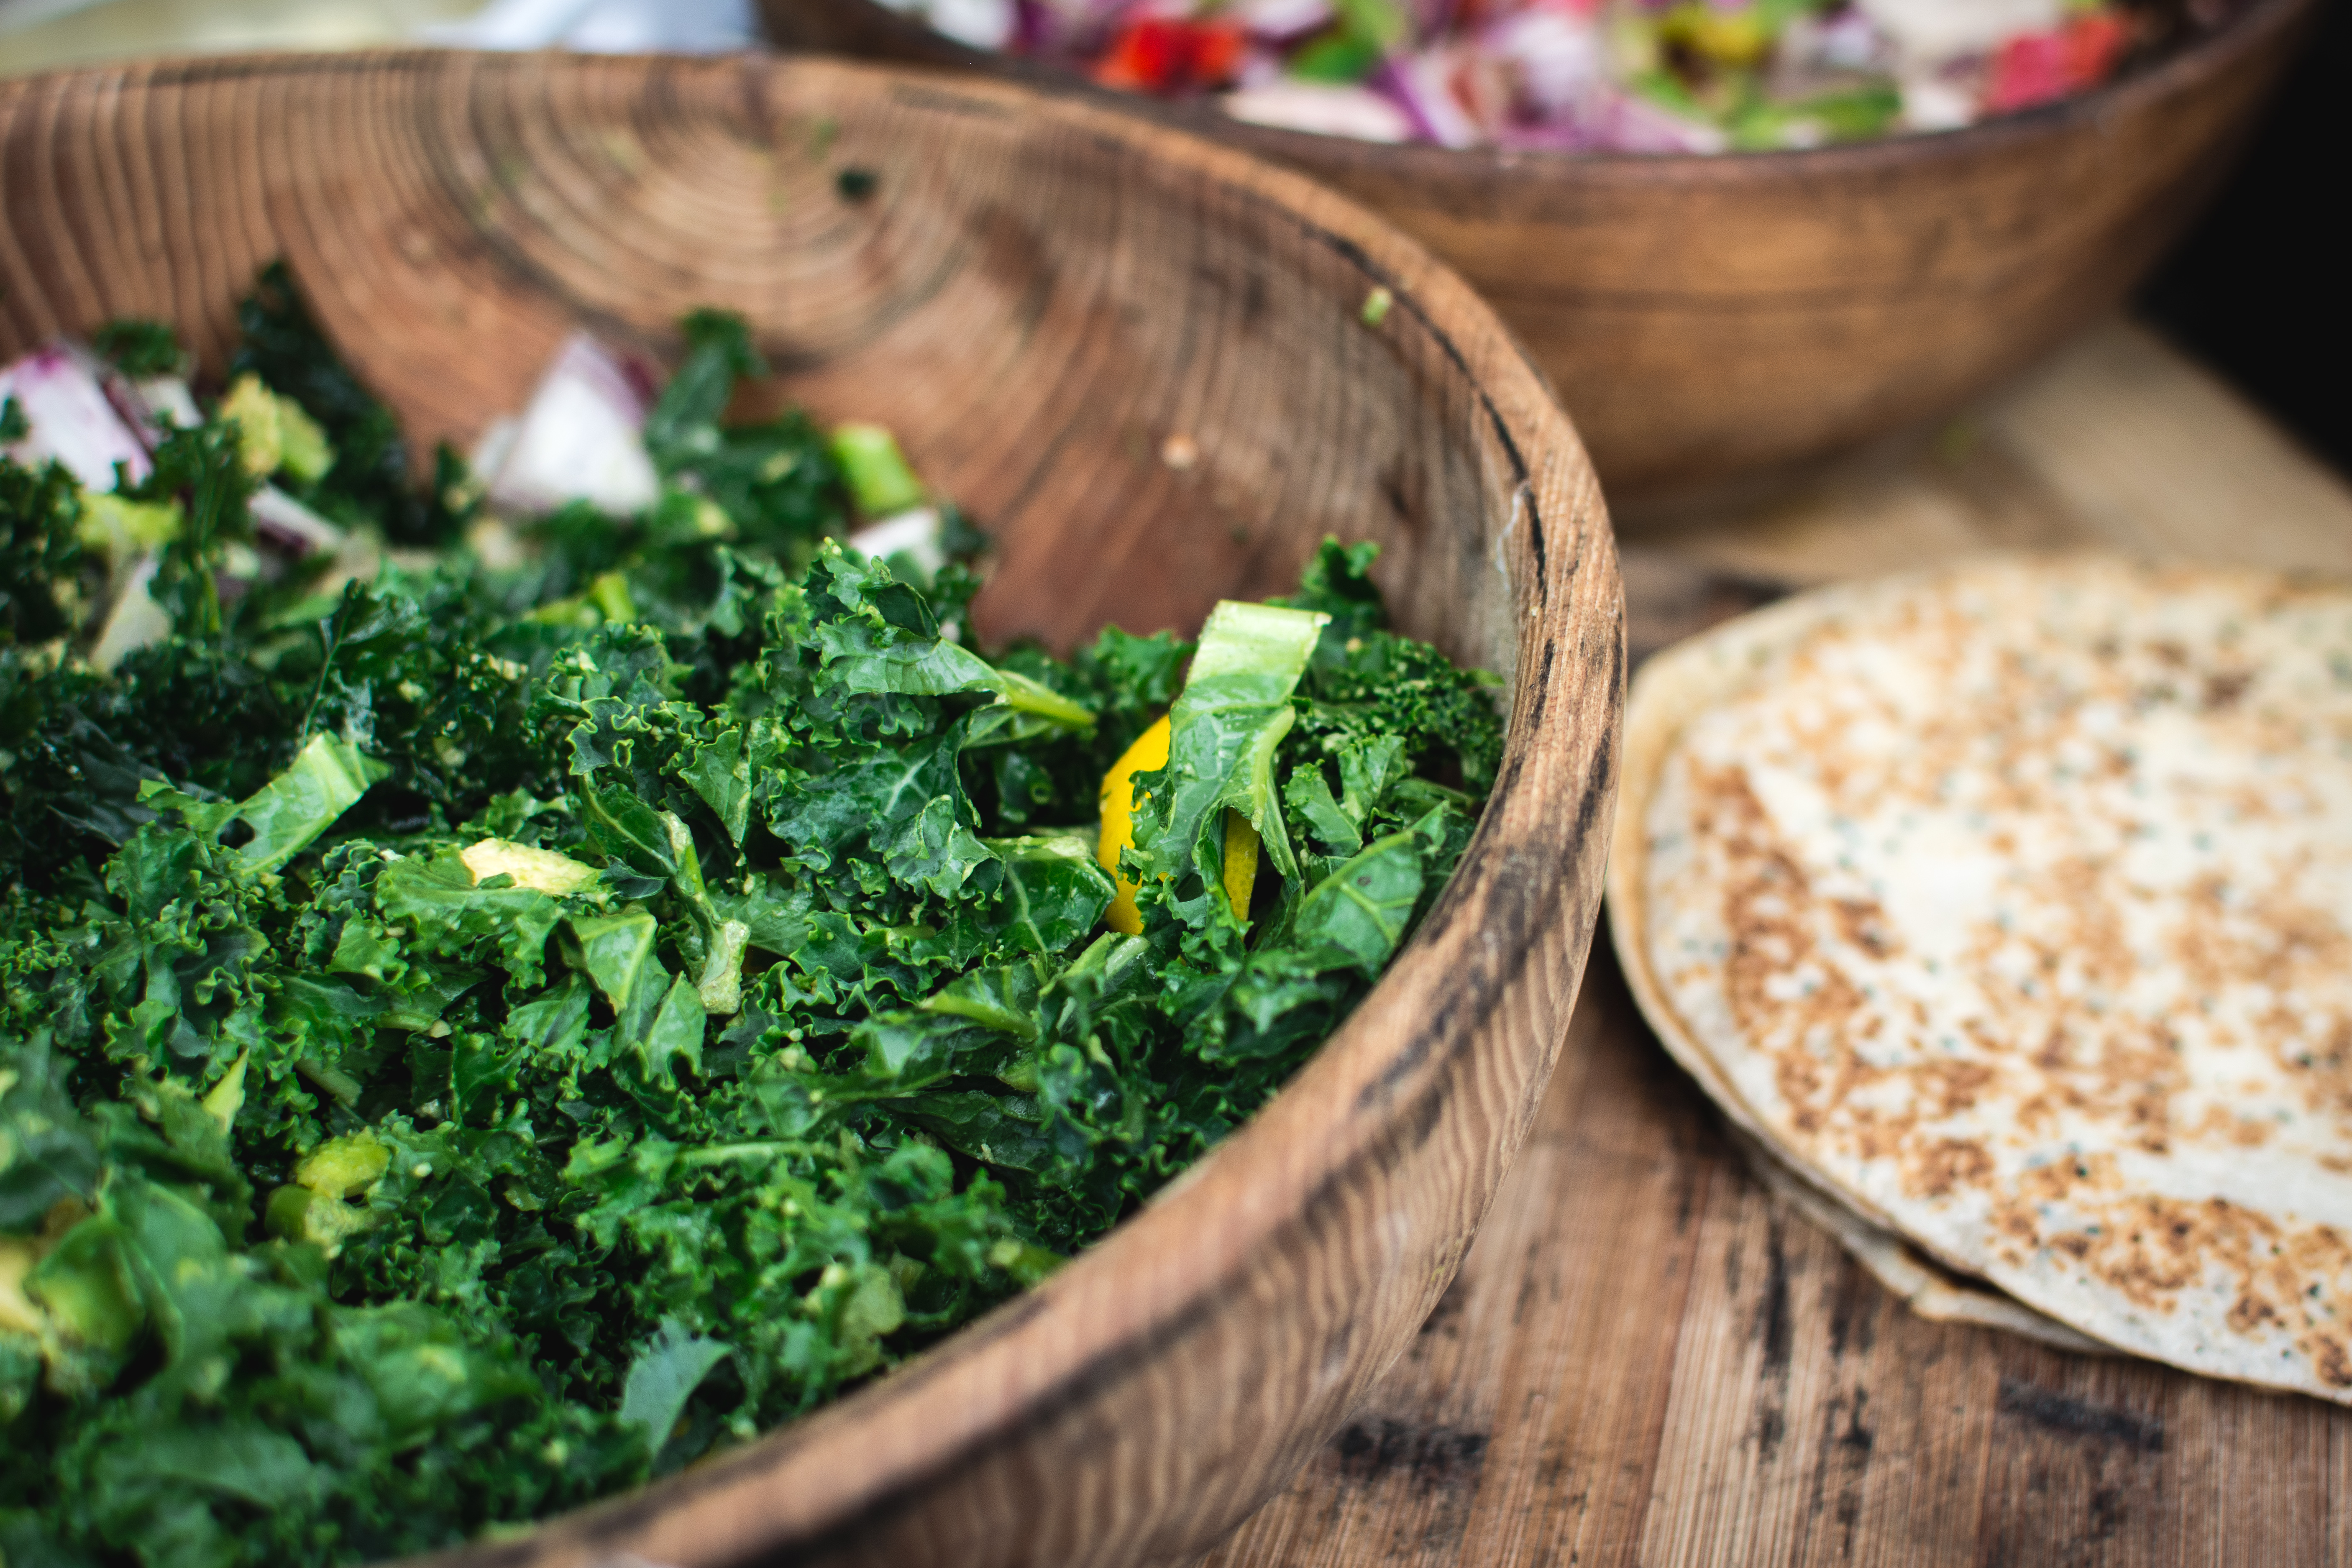 foodiesfeed.com_chopped-kale-in-wooden-bowl1